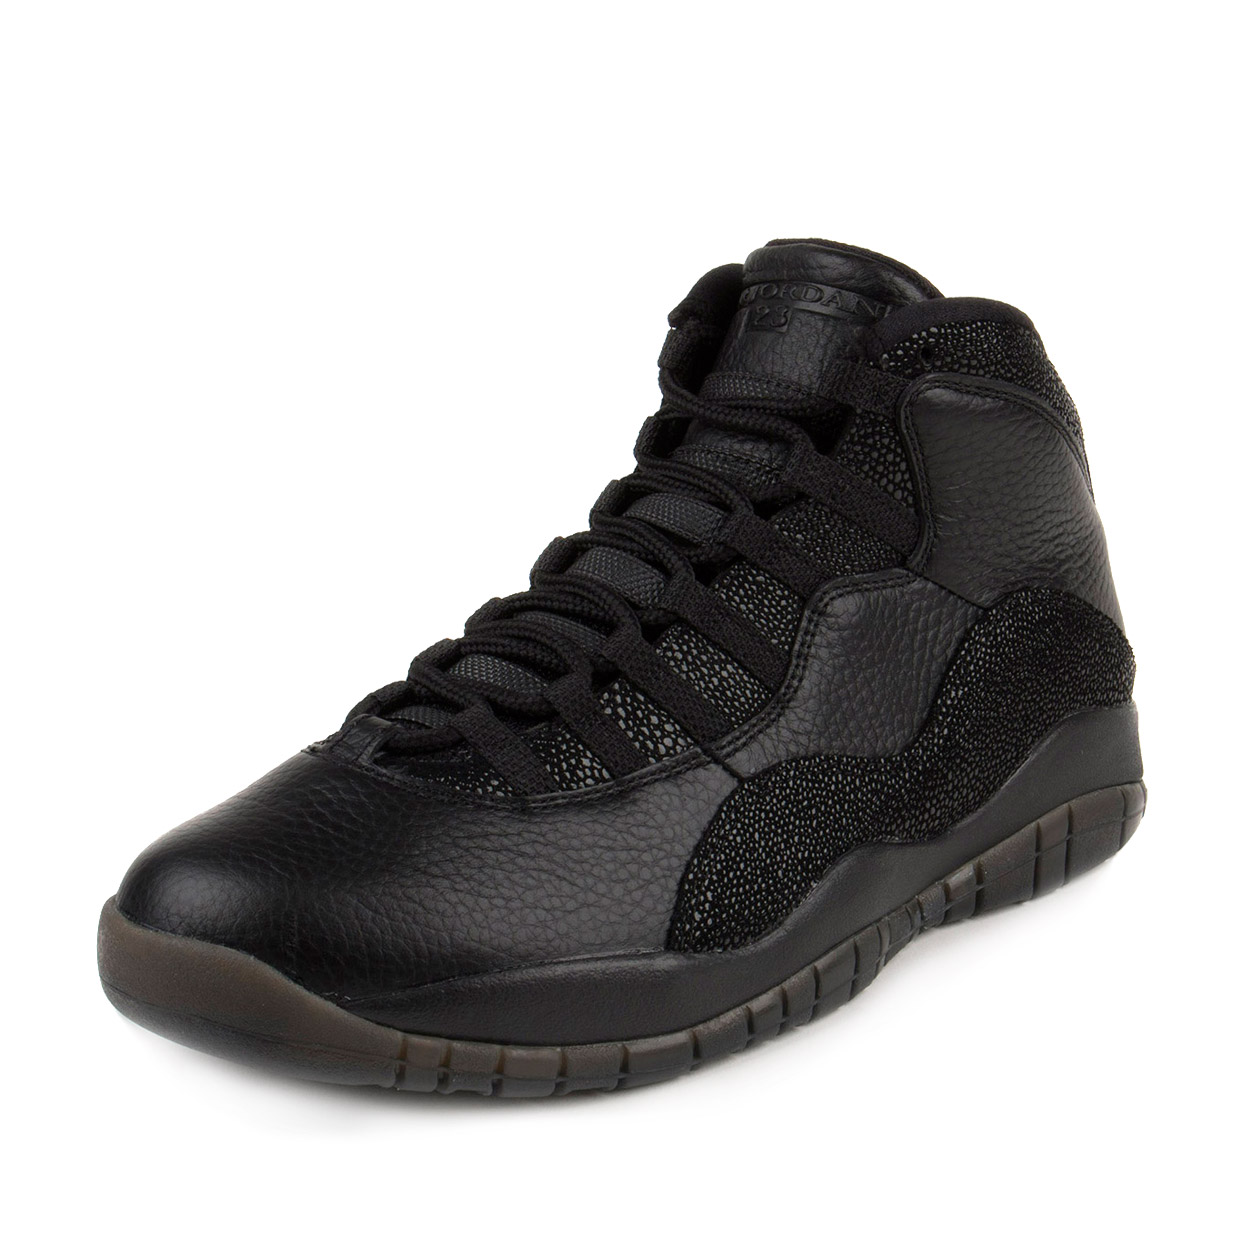 cf7fa39756e304 ... ireland nike mens air jordan 10 retro ovo black gold 819955 030 df283  a51cc